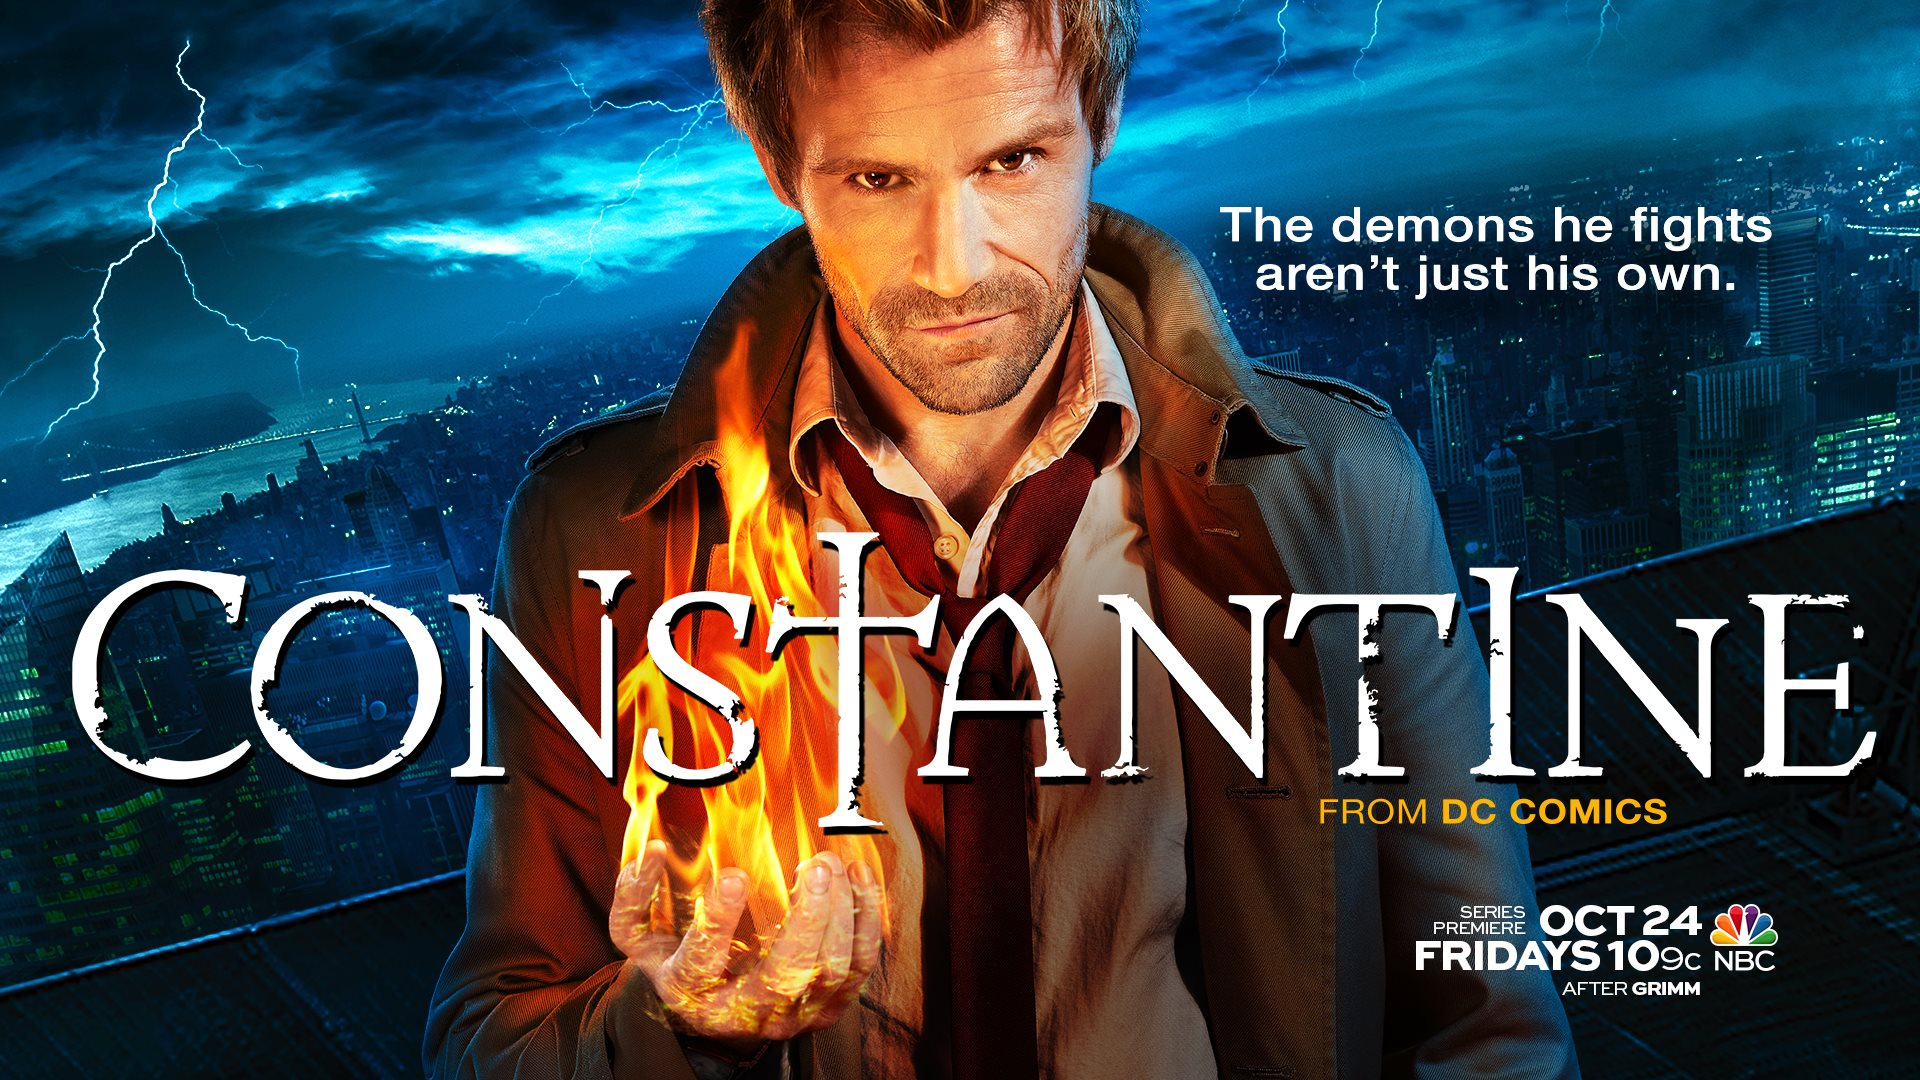 constantine full movie free download in hindi